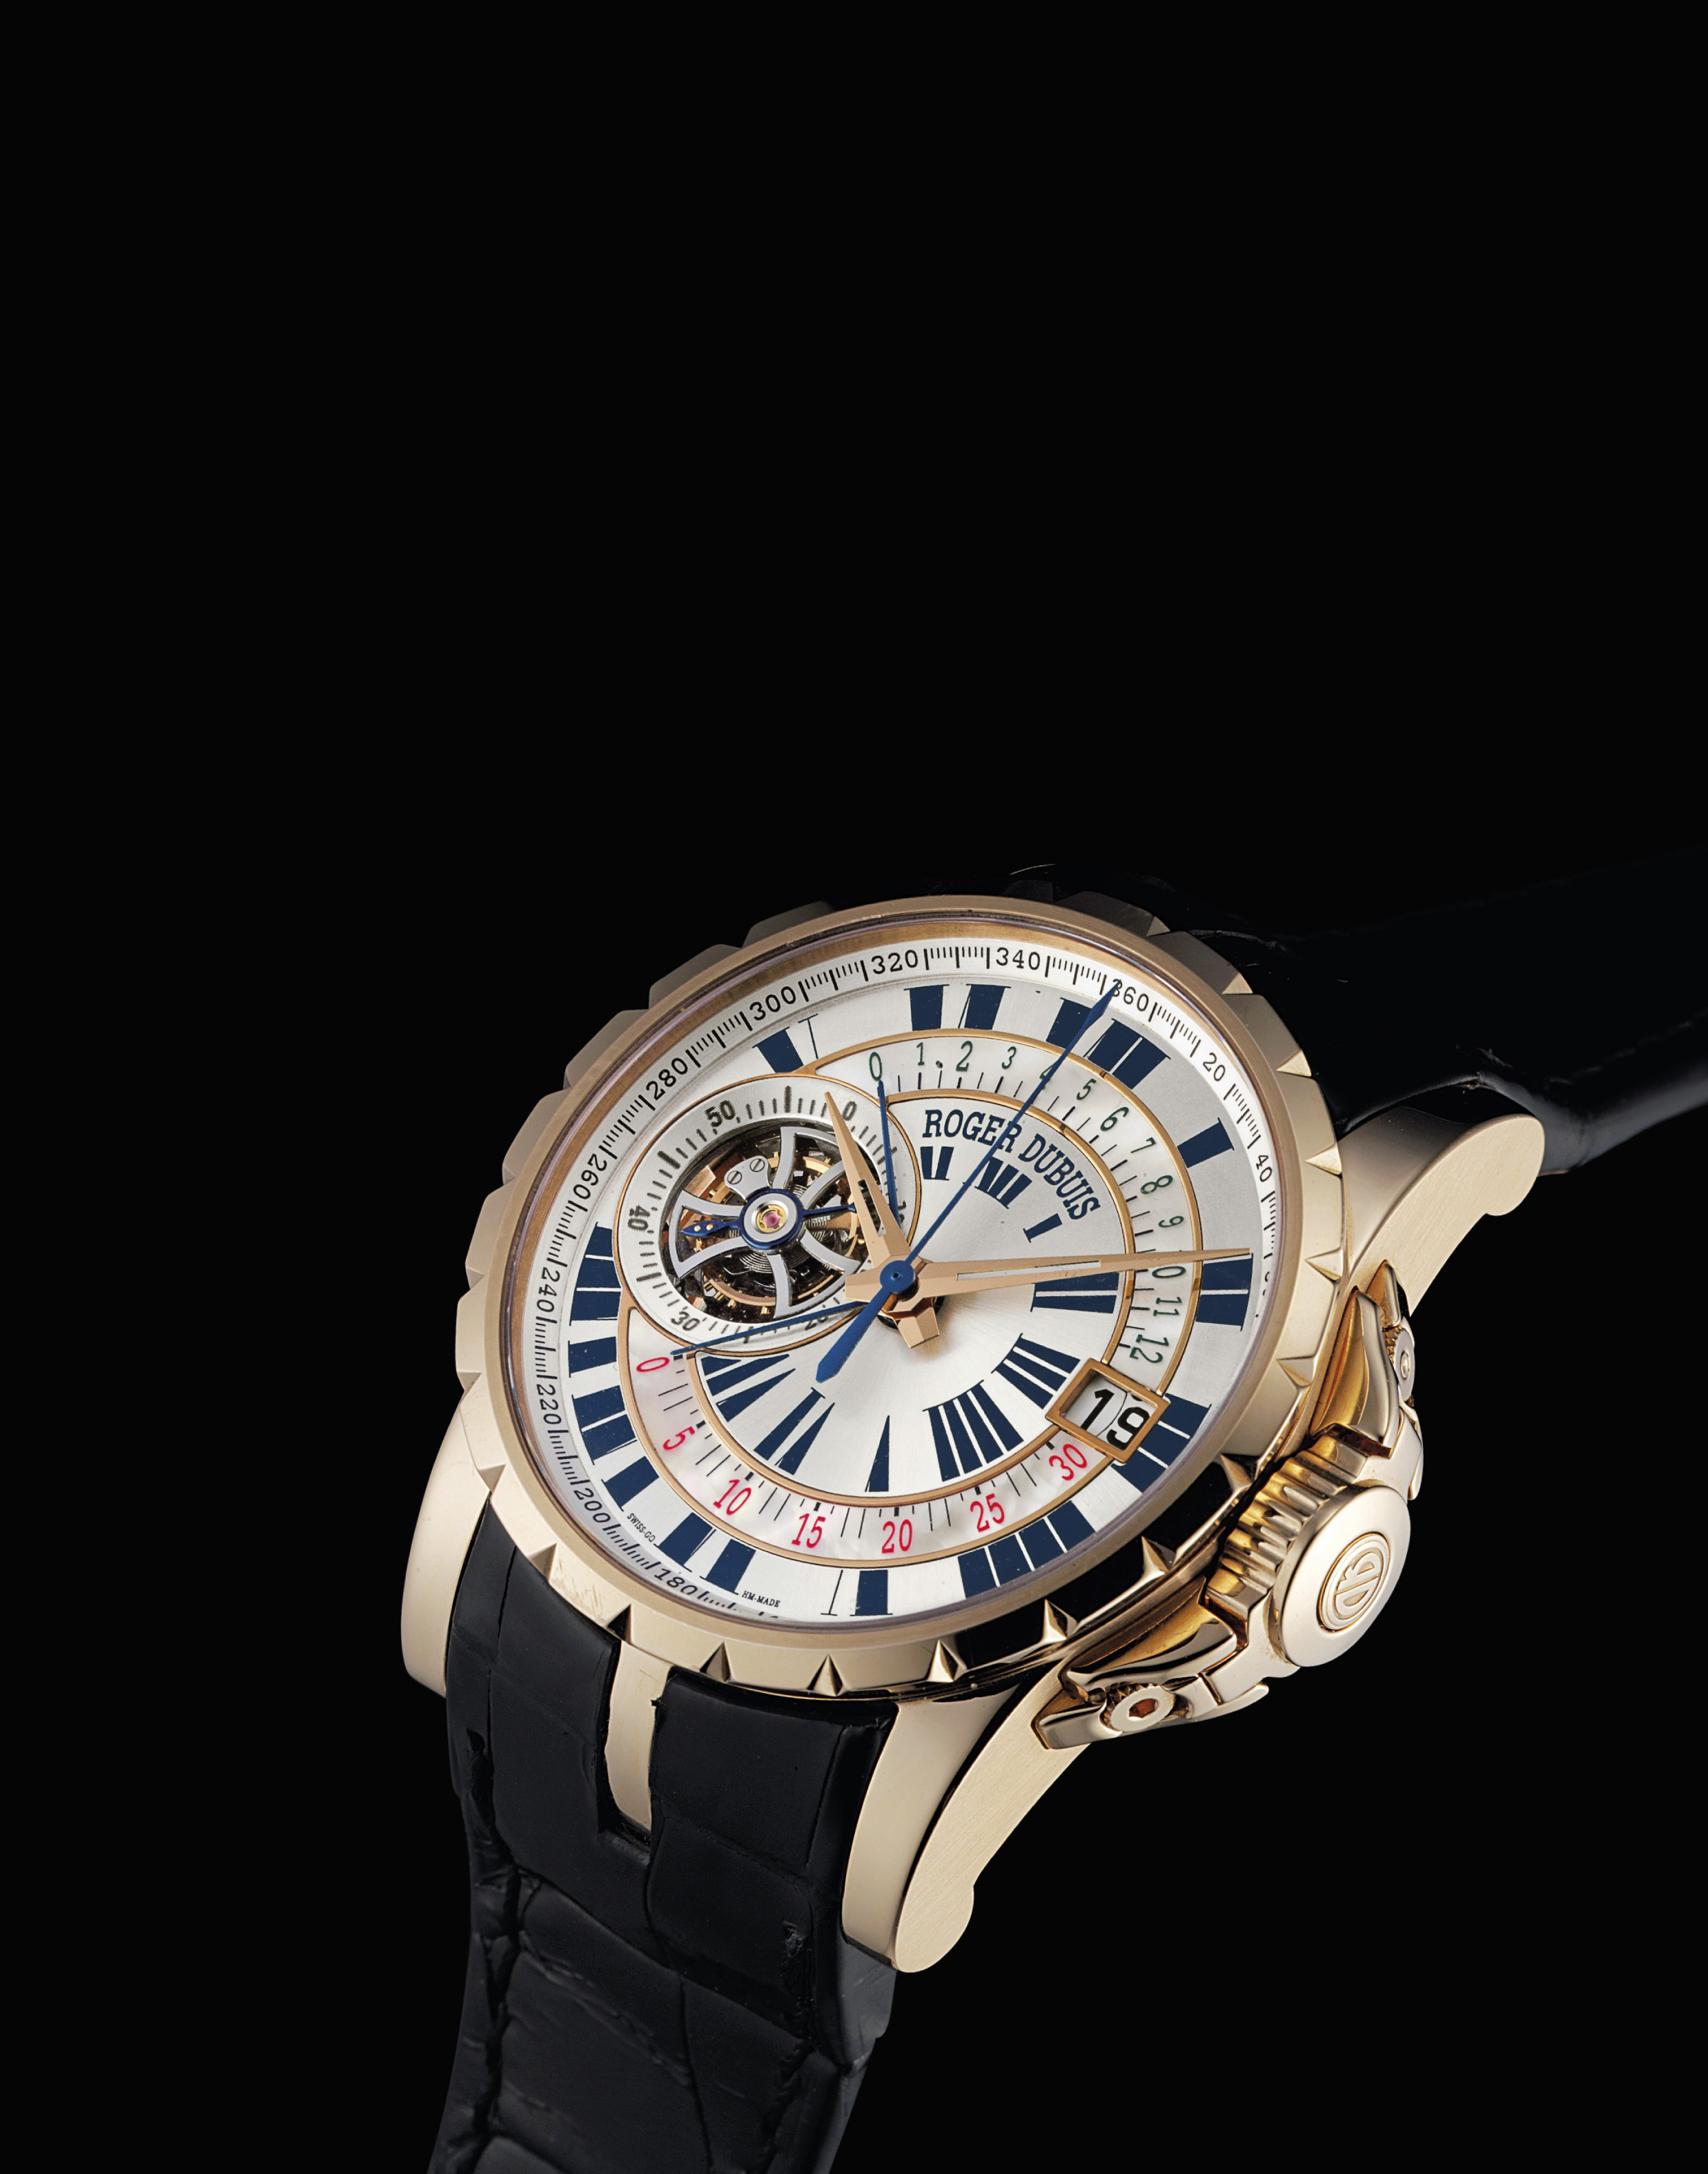 ROGER DUBUIS. A LARGE AND RARE 18K PINK GOLD AND MOTHER-OF-PEARL LIMITED EDITION SINGLE BUTTON CHRONOGRAPH TOURBILLON WRISTWATCH WITH DATE AND RETROGRADE REGISTERS